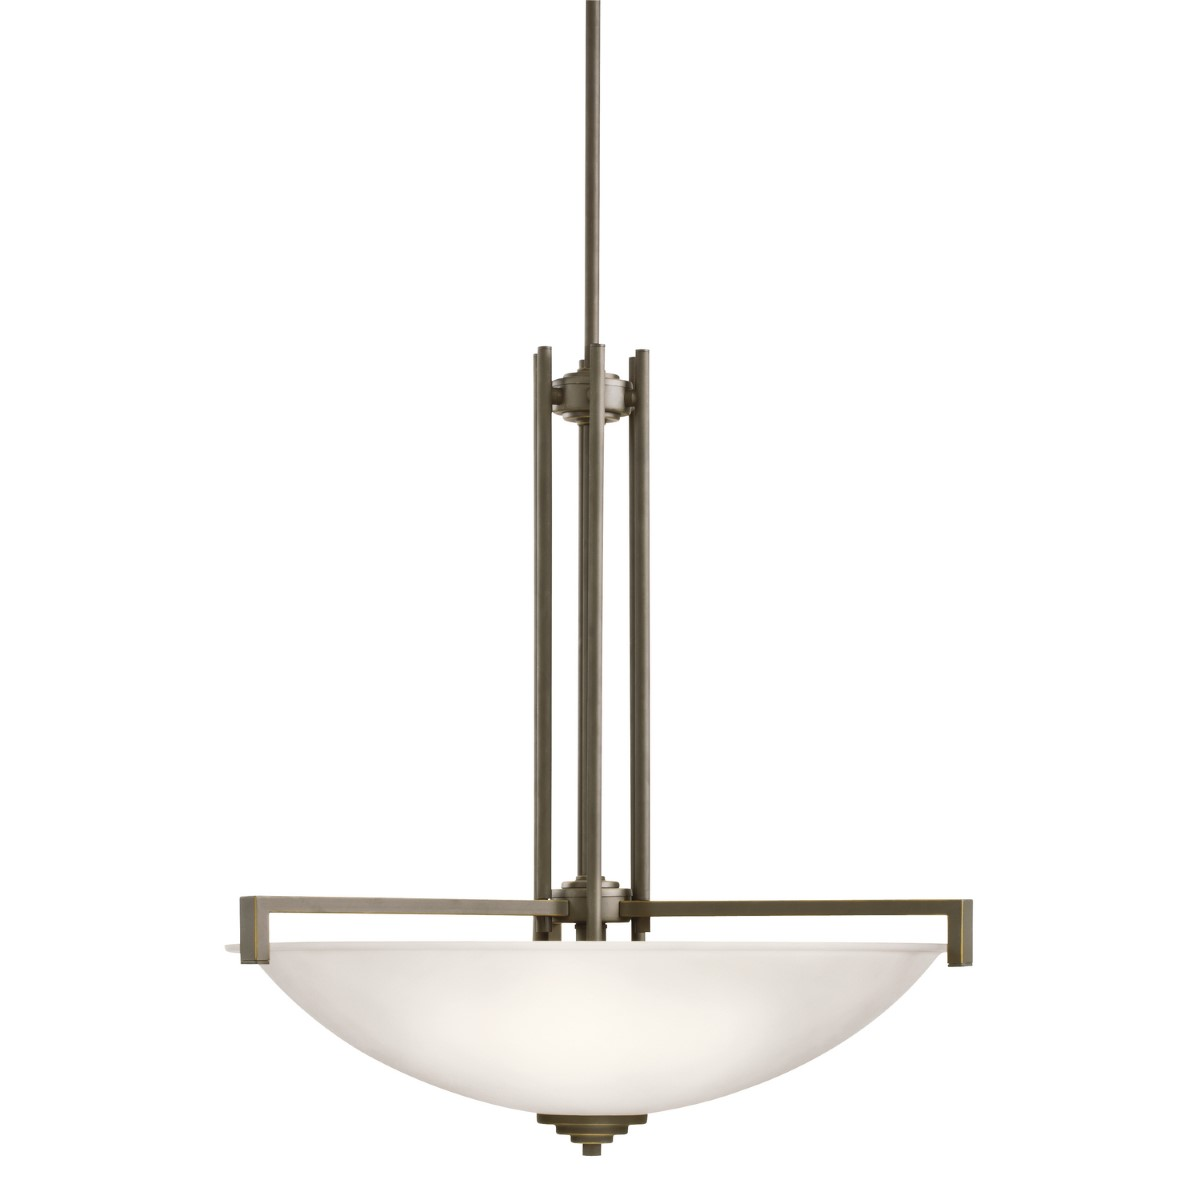 Kichler Eileen Eileen Four-Light Pendant Light with Satin Etched White Steel Shade - Olde Bronze (3299OZS)